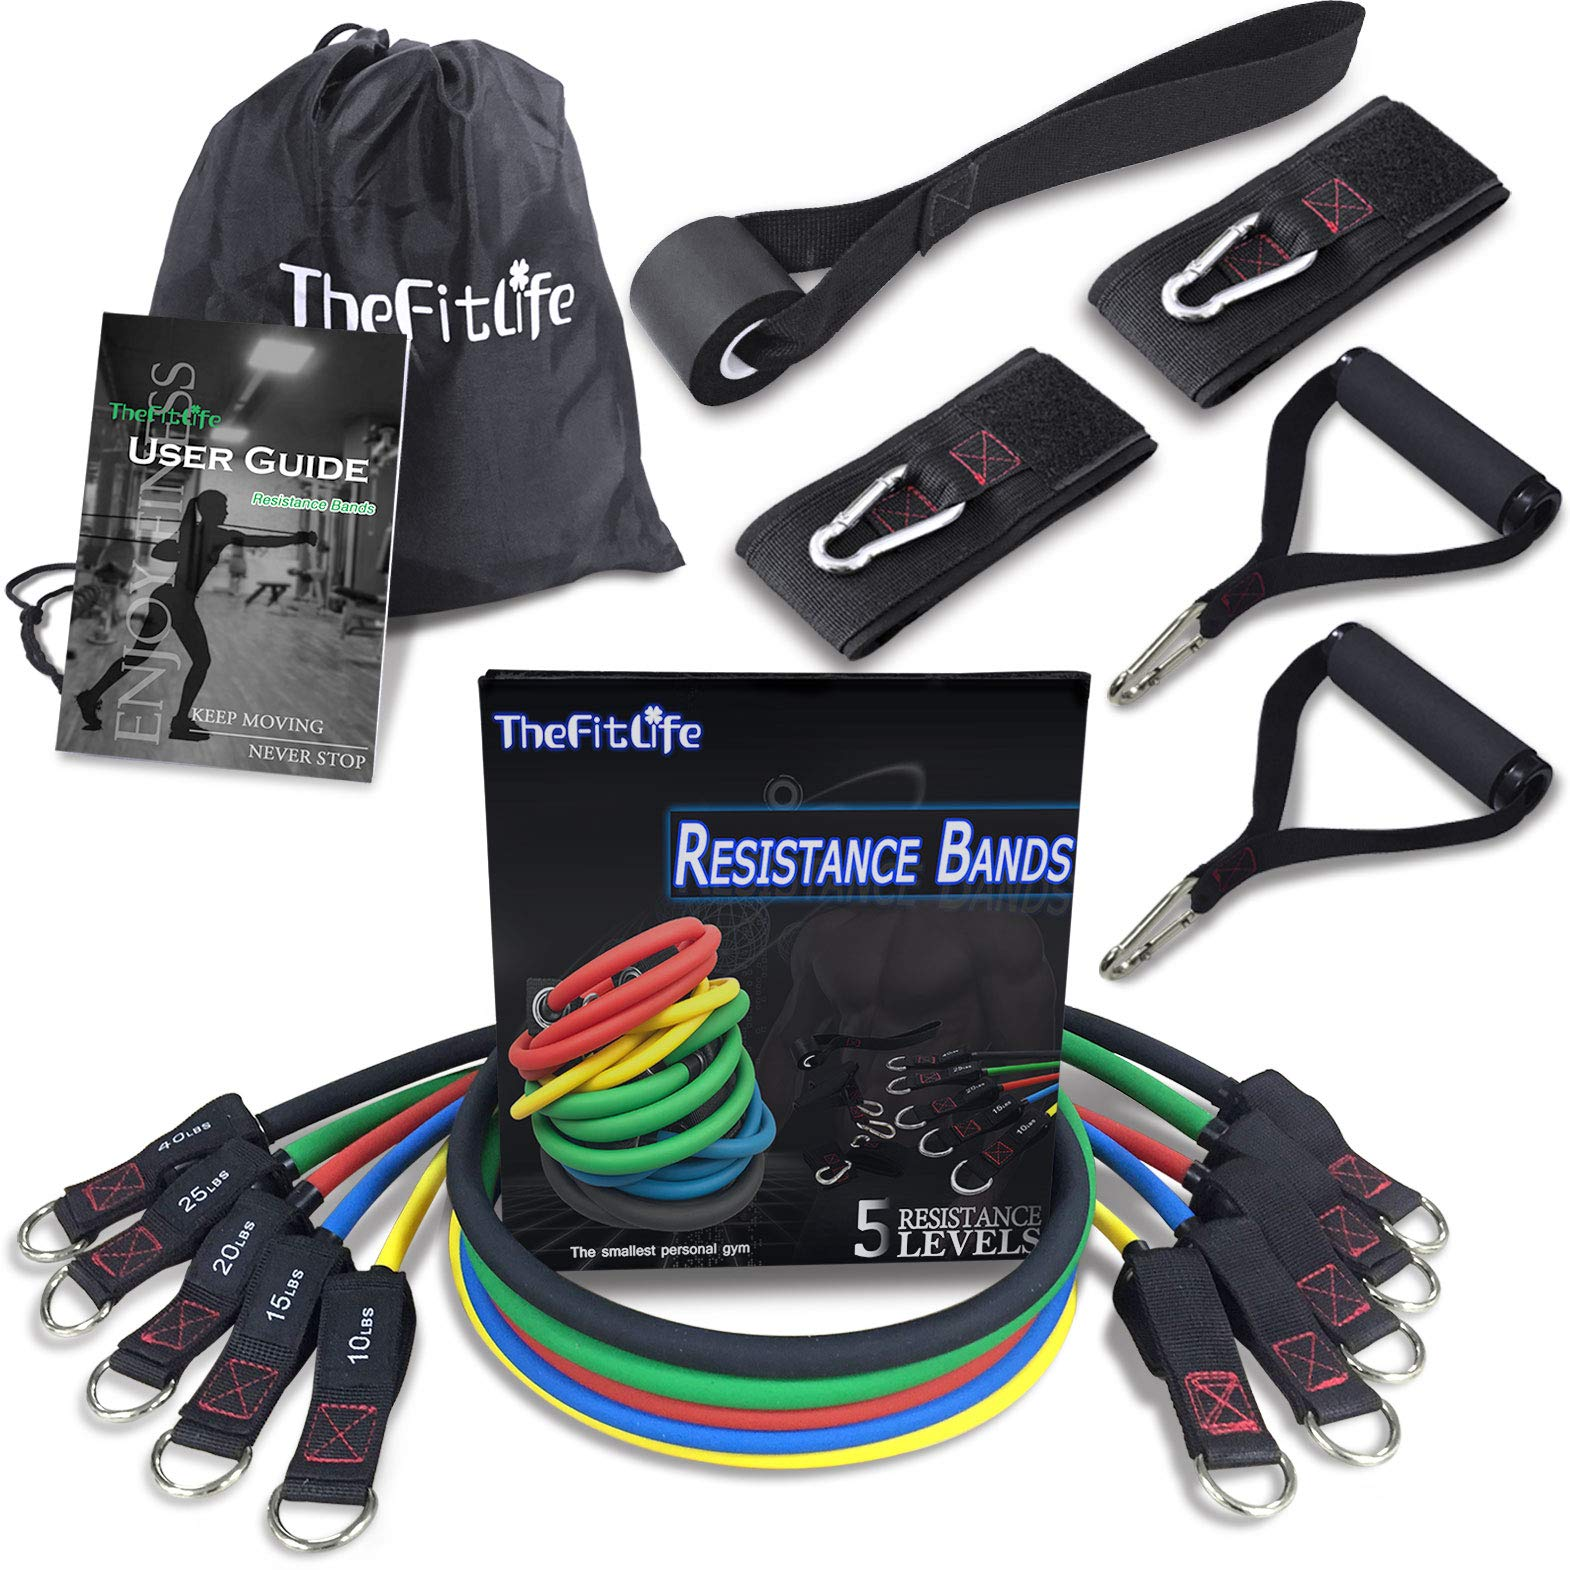 TheFitLife Exercise and Resistance Bands Set - Stackable up to 110 lbs Workout Tubes for Indoor and Outdoor Sports, Fitness, Suspension, Speed Strength, Baseball Softball Training, Home Gym, Yoga product image